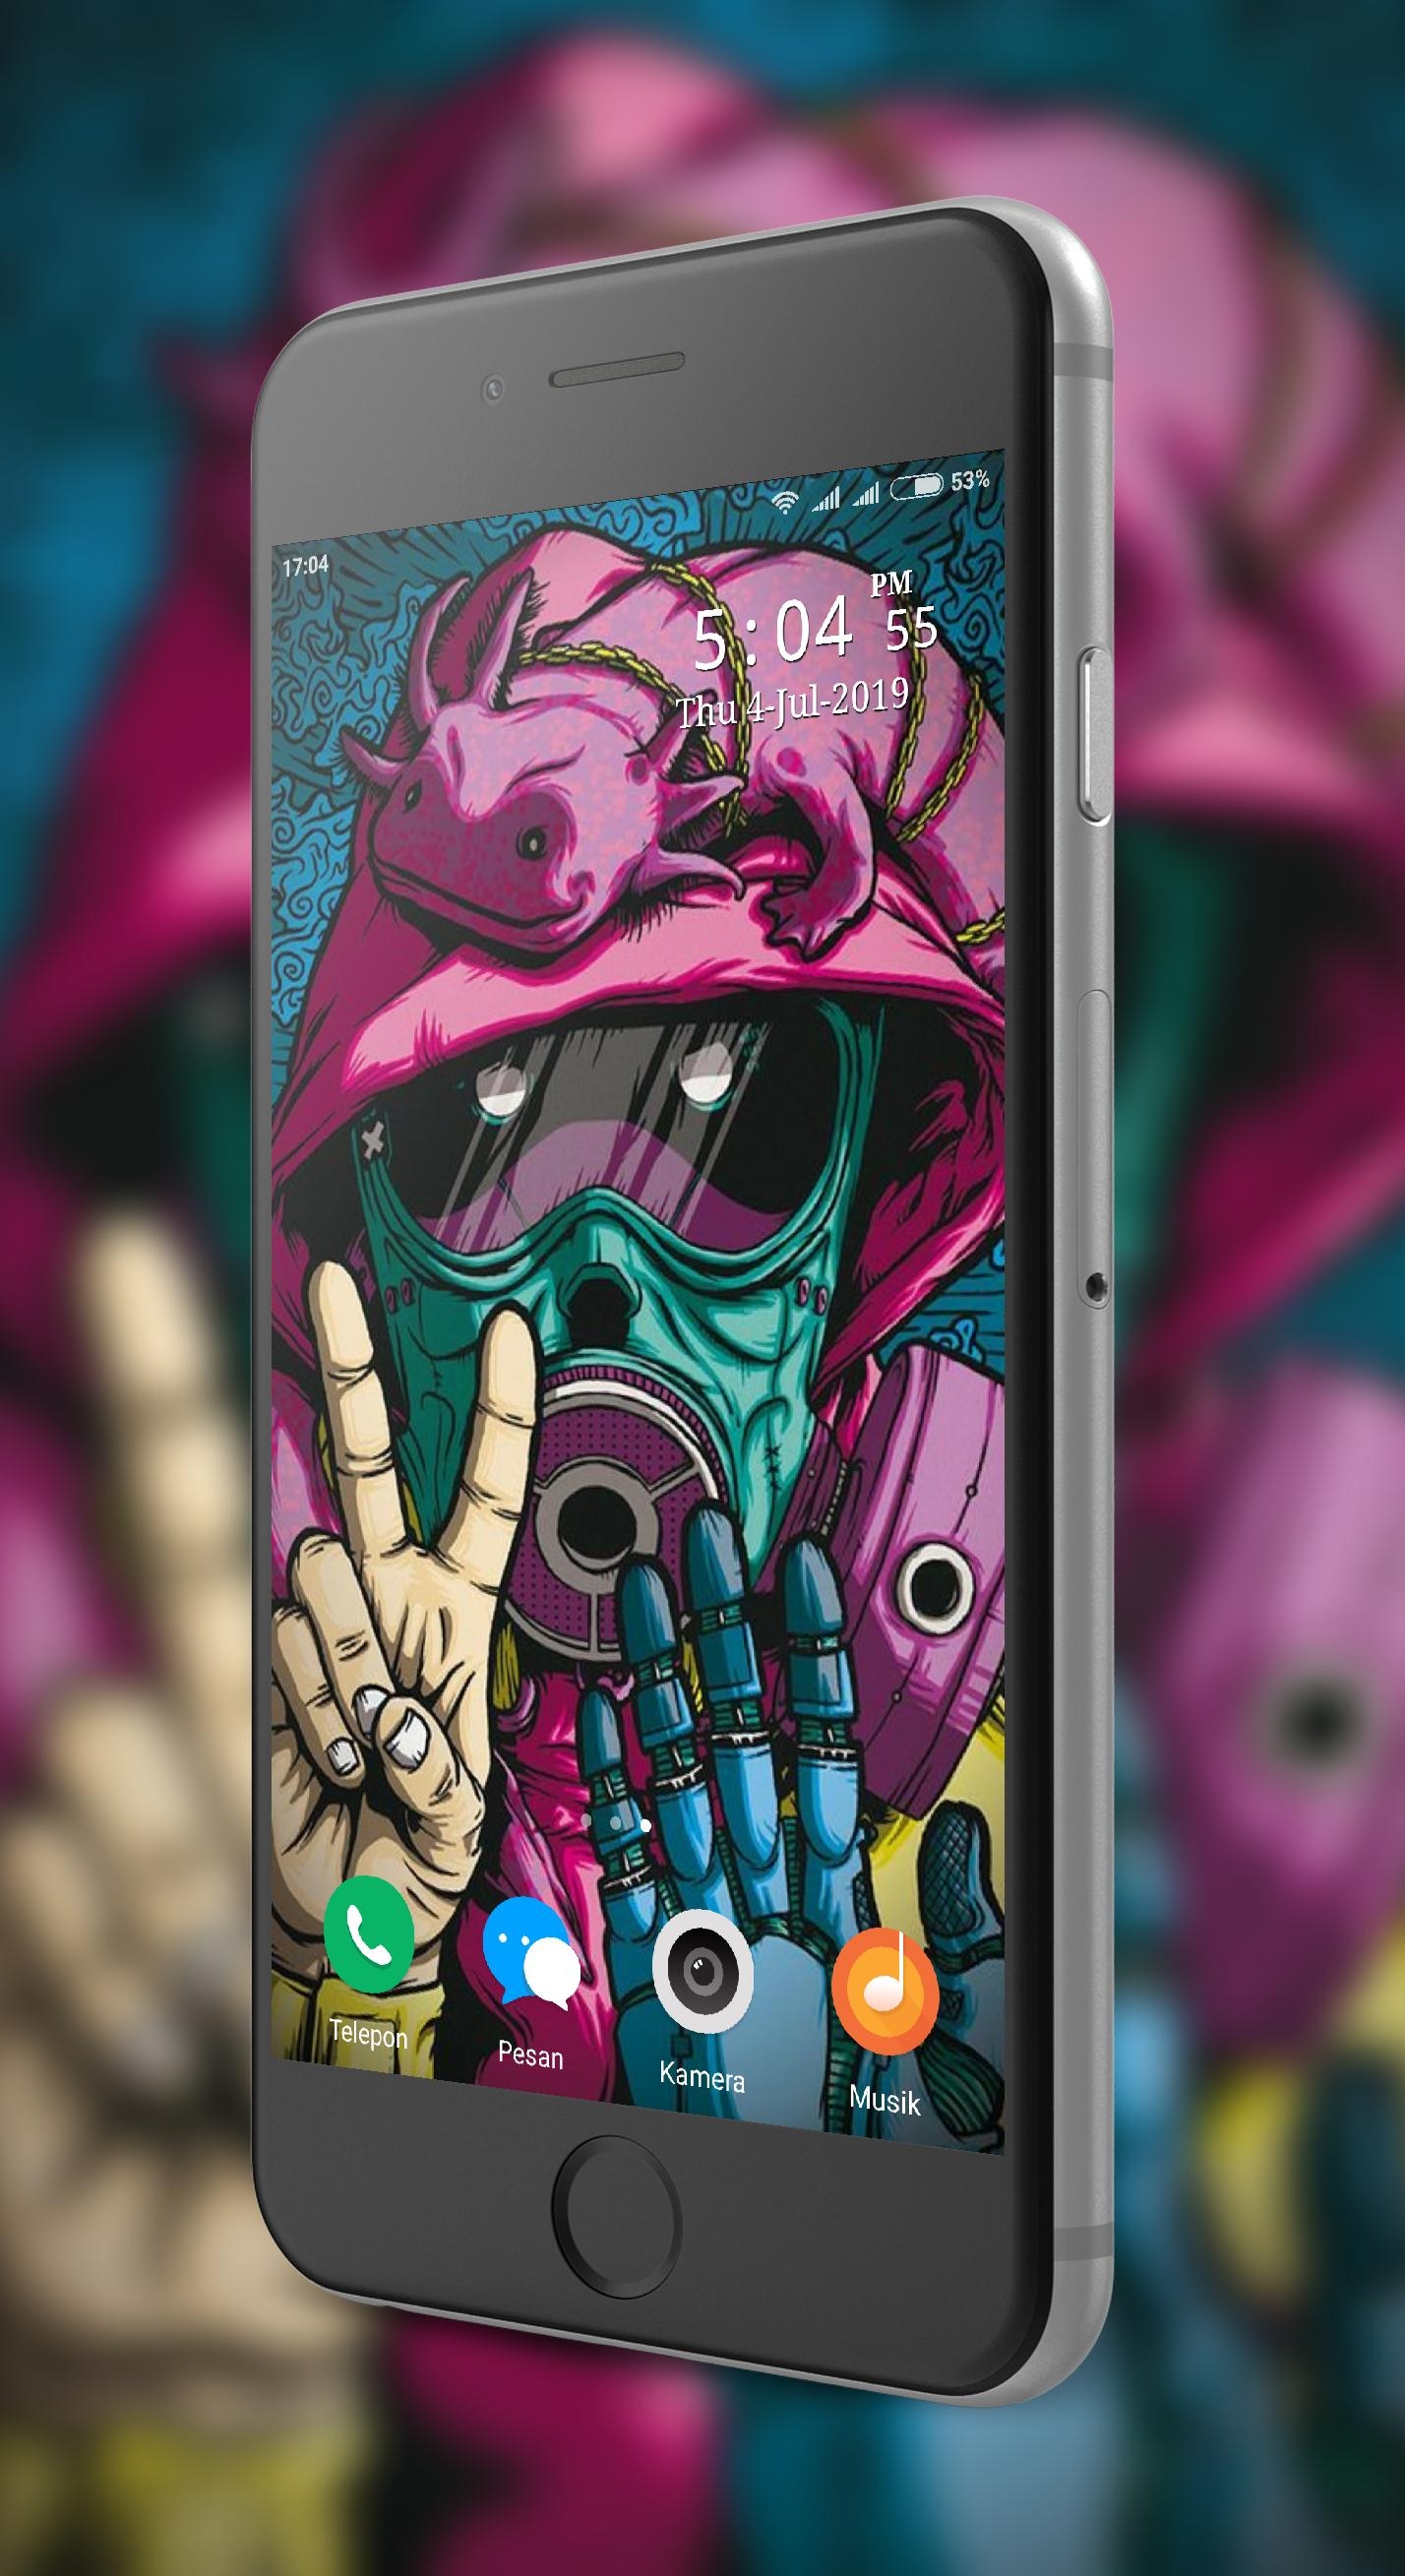 Download 440 Wallpaper Iphone Karakter Gambar HD Paling Keren